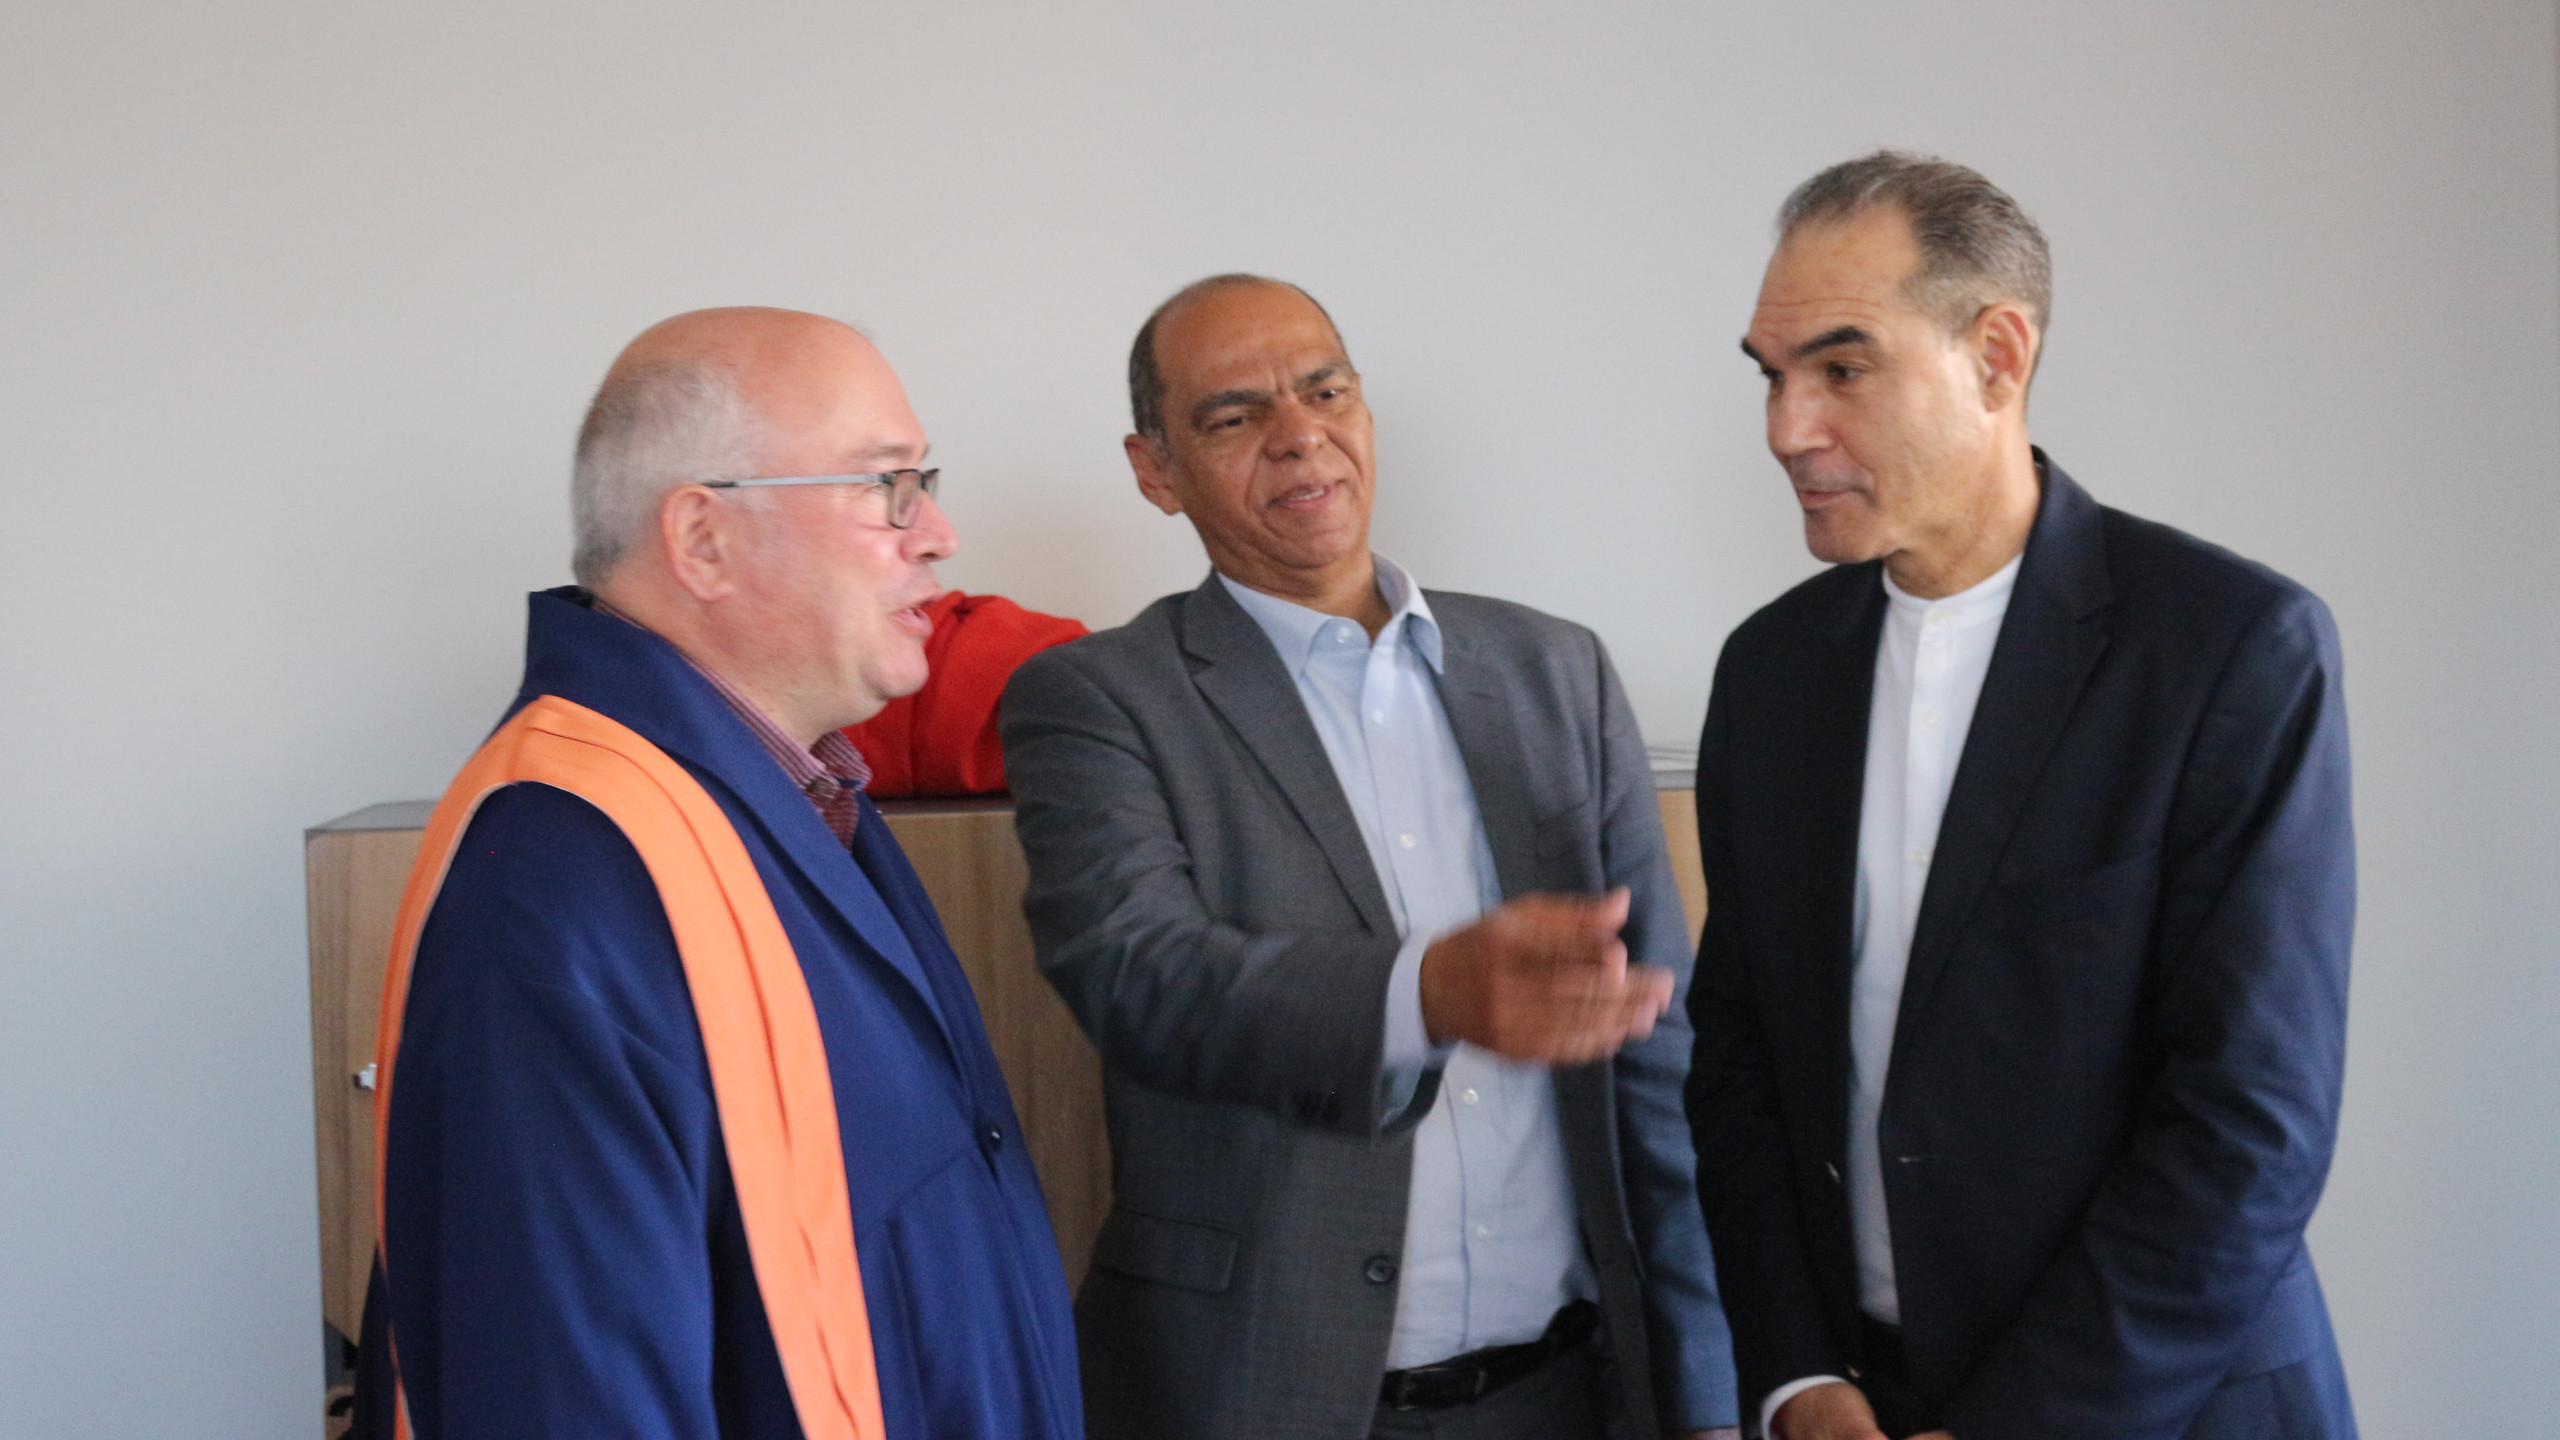 From left to right: Prof Leo van Audenhove; Larry Pokpas and the UWC Rector Prof Tyrone Pretorius